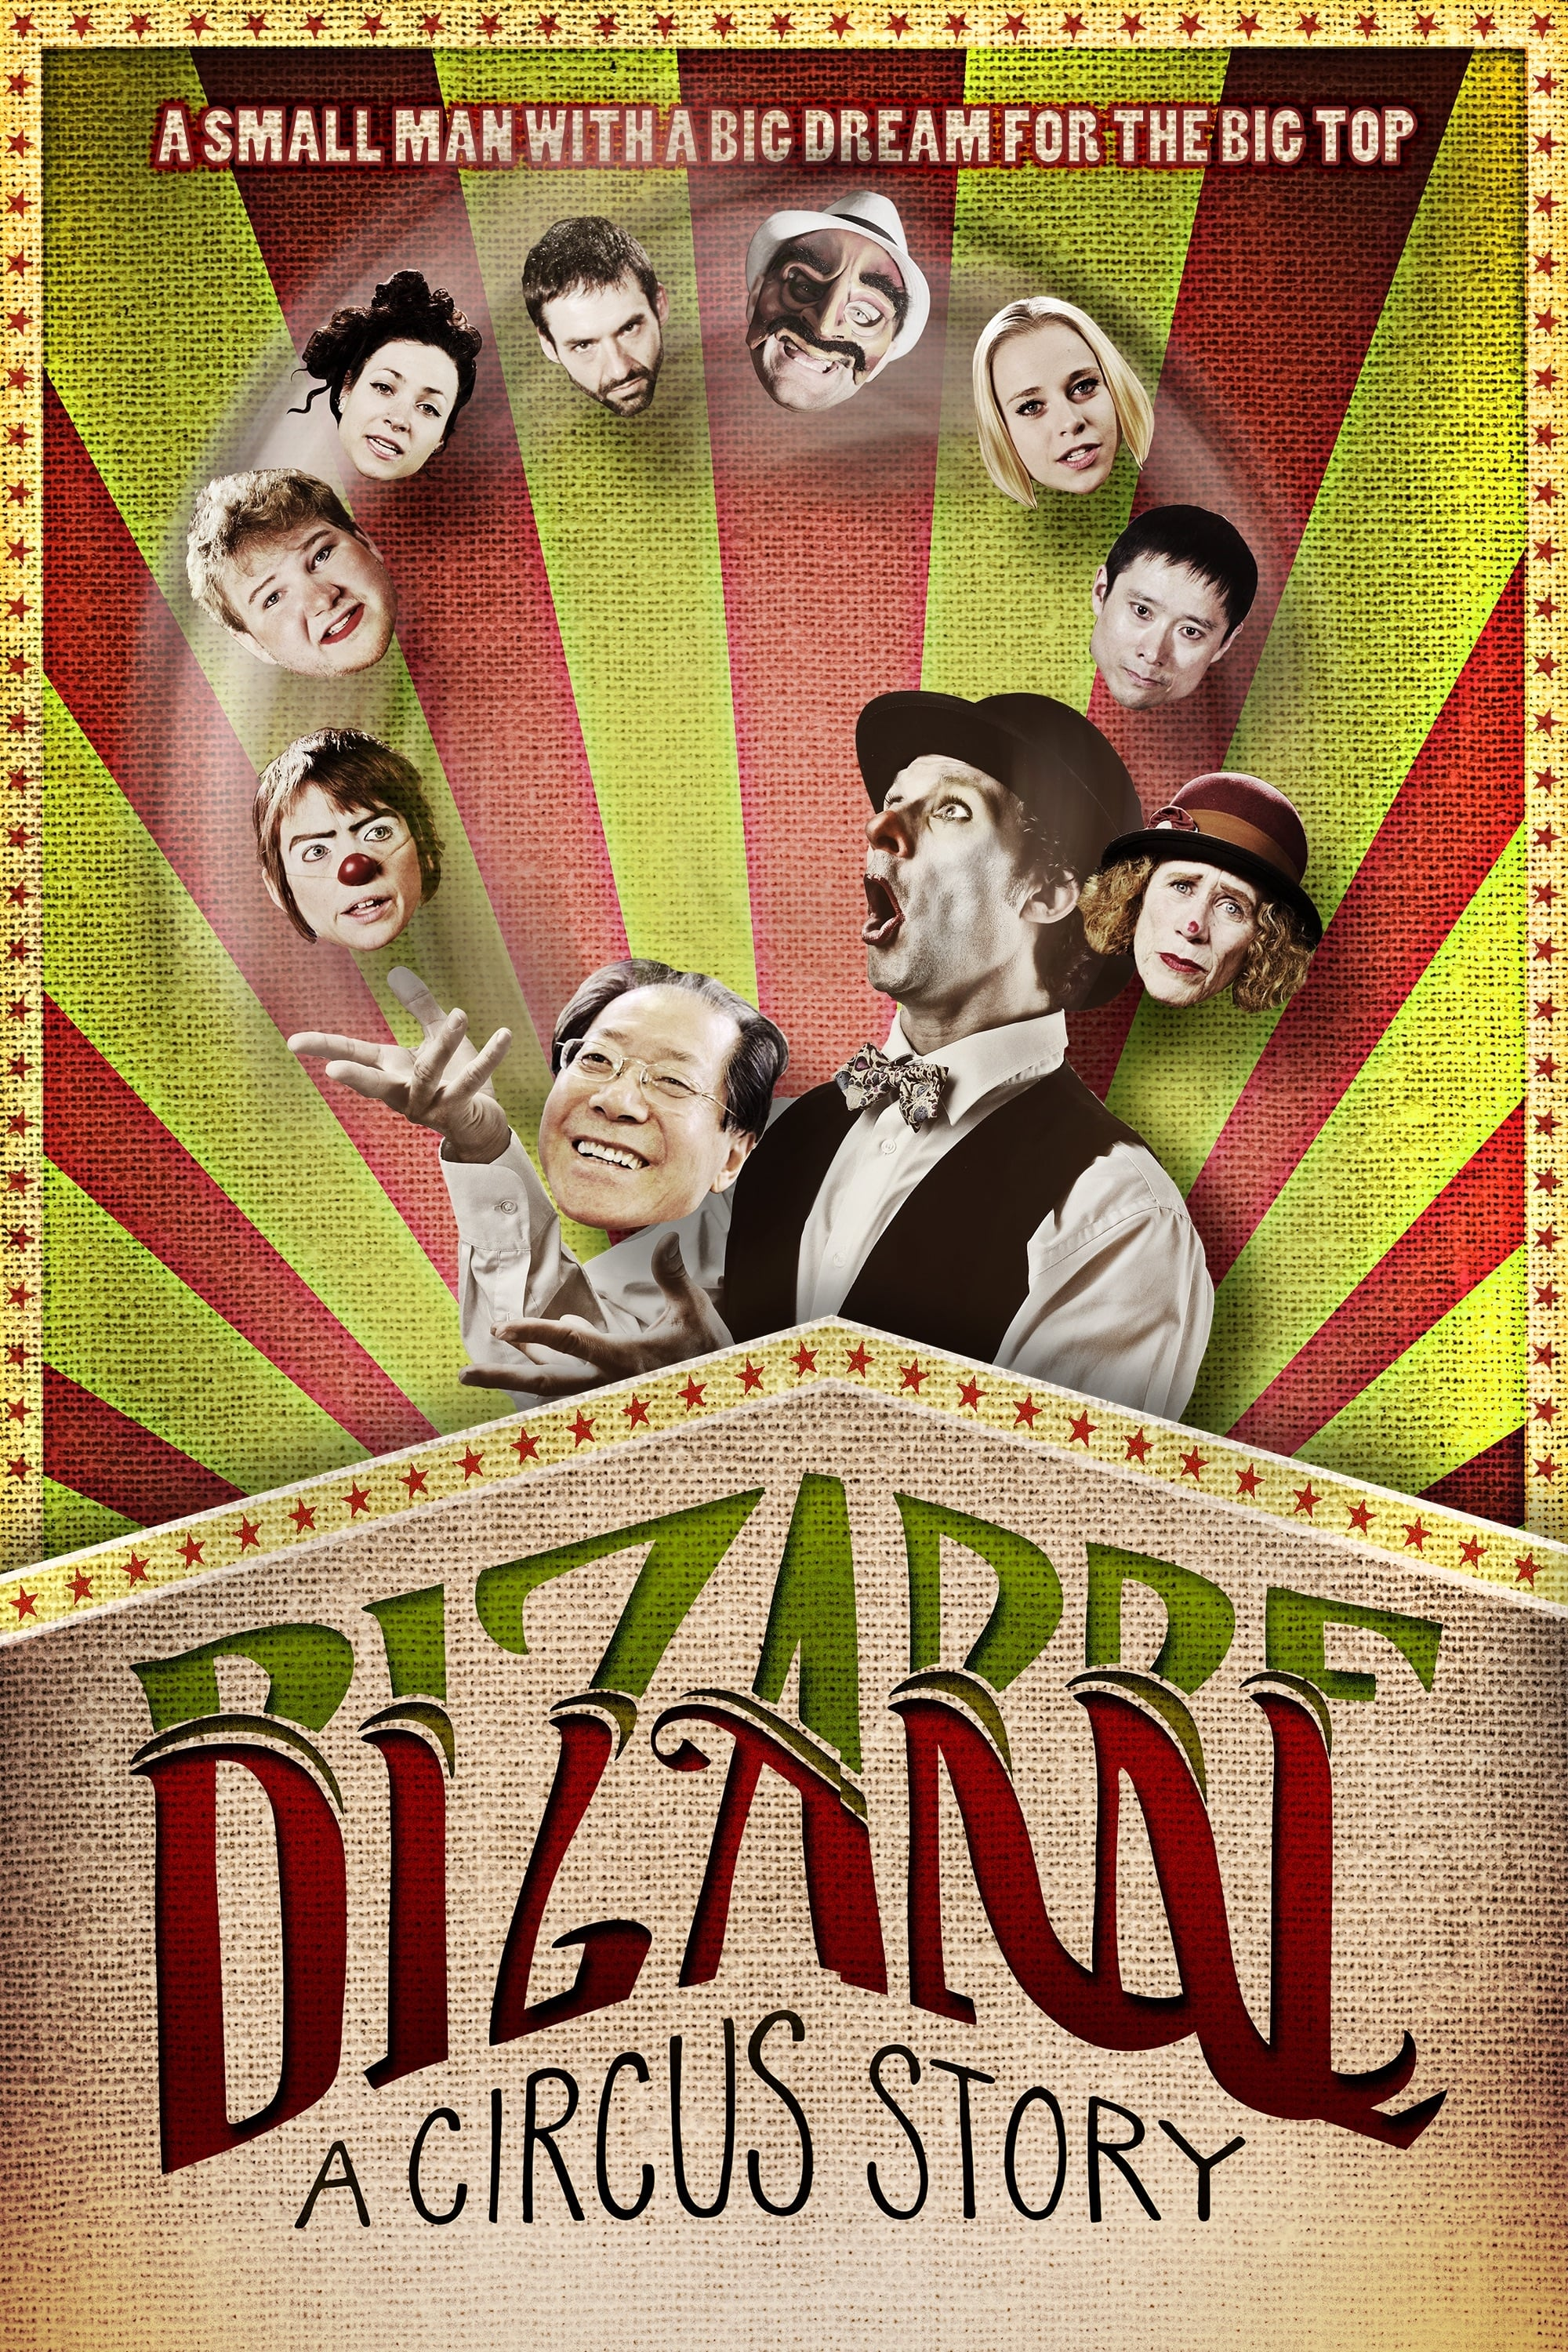 Bizarre: A Circus Story on FREECABLE TV